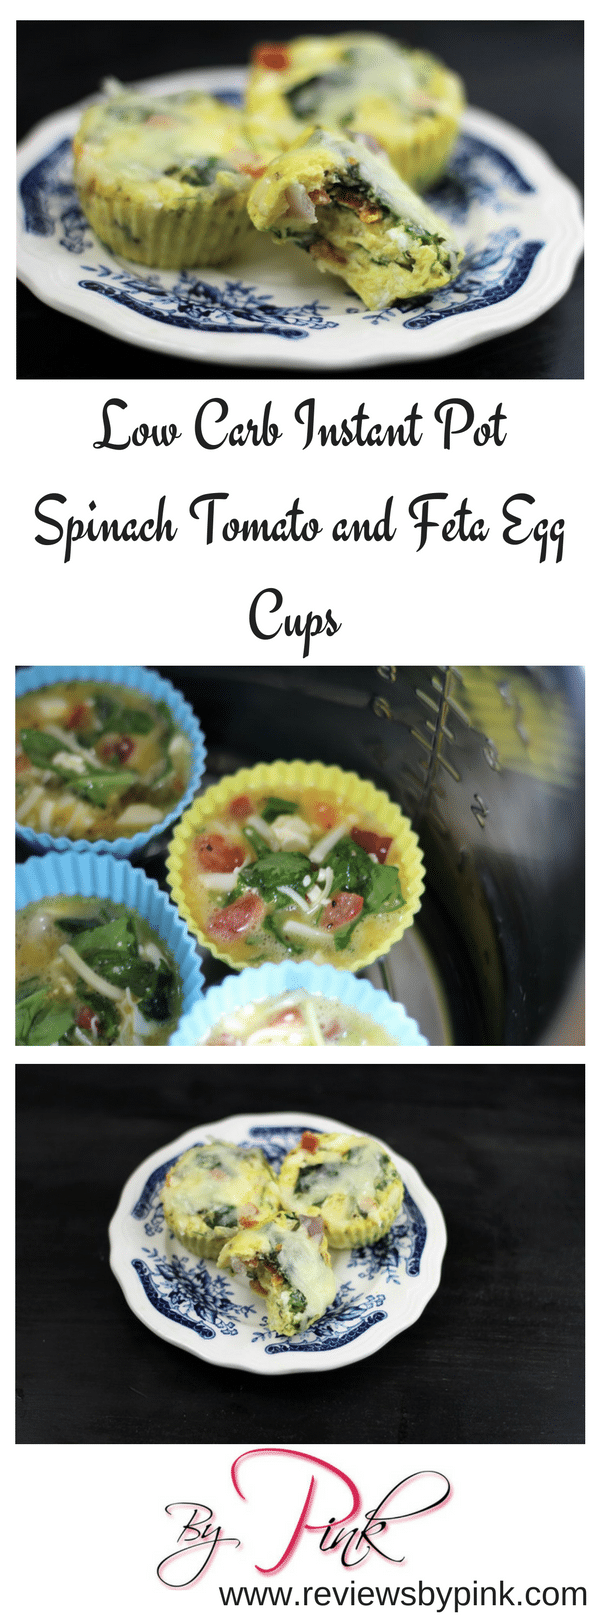 Low Carb Instant Pot Spinach, Tomato and Feta Egg Cups